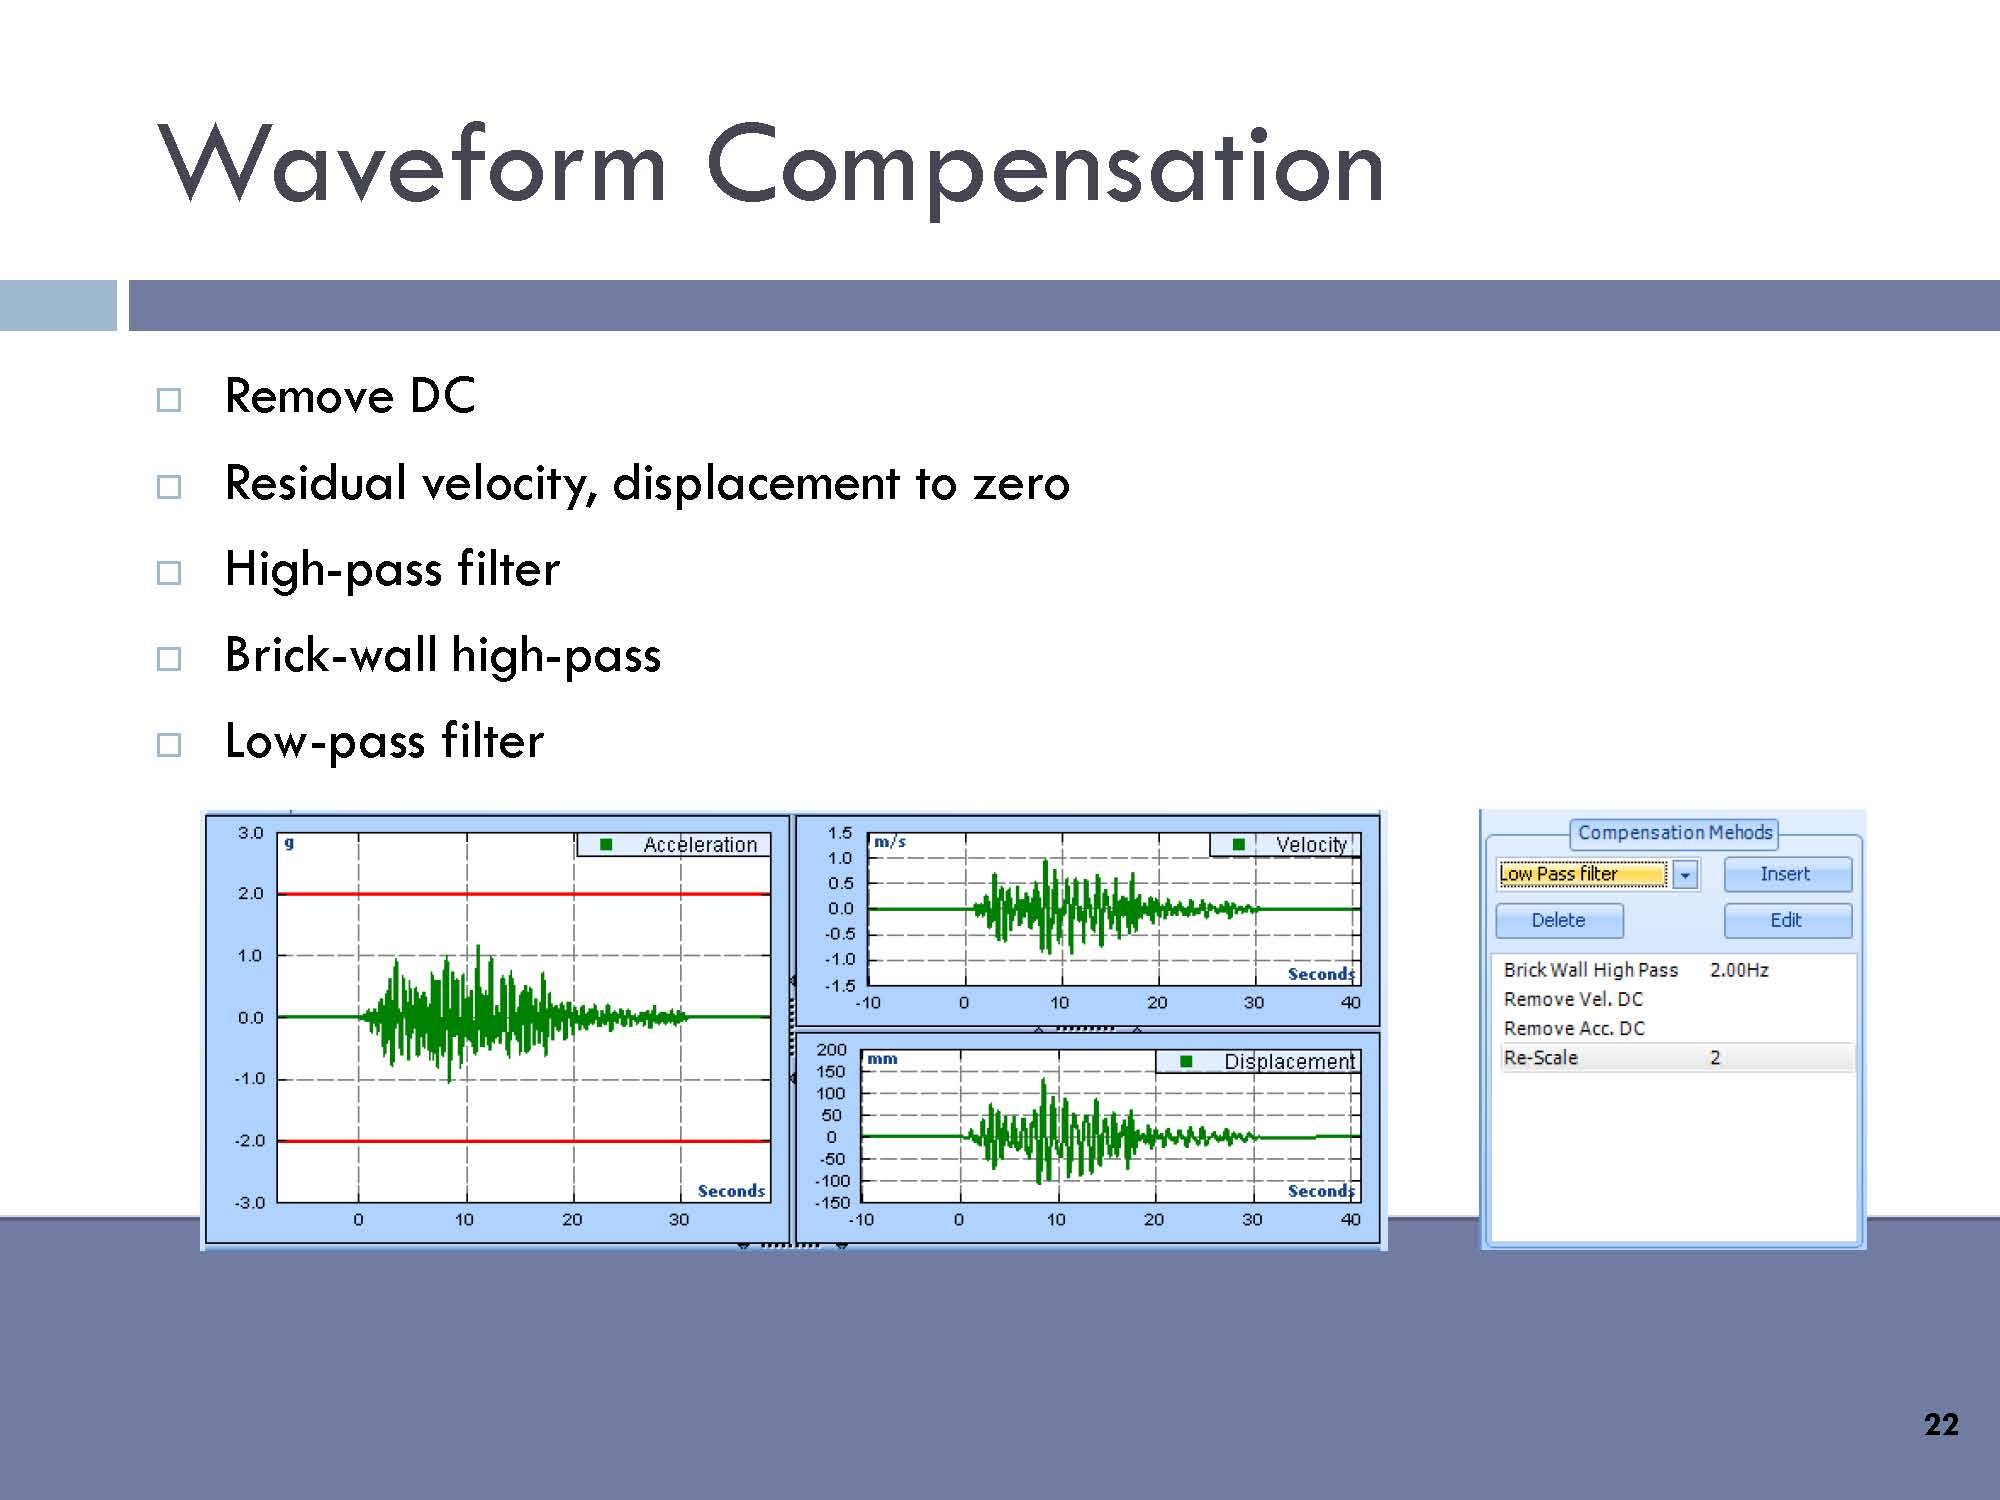 Waveform Compensation: Remove DC, residual velocity, displacement to zero, high-pass filter, brick-wall high-pass, low-pass filter.